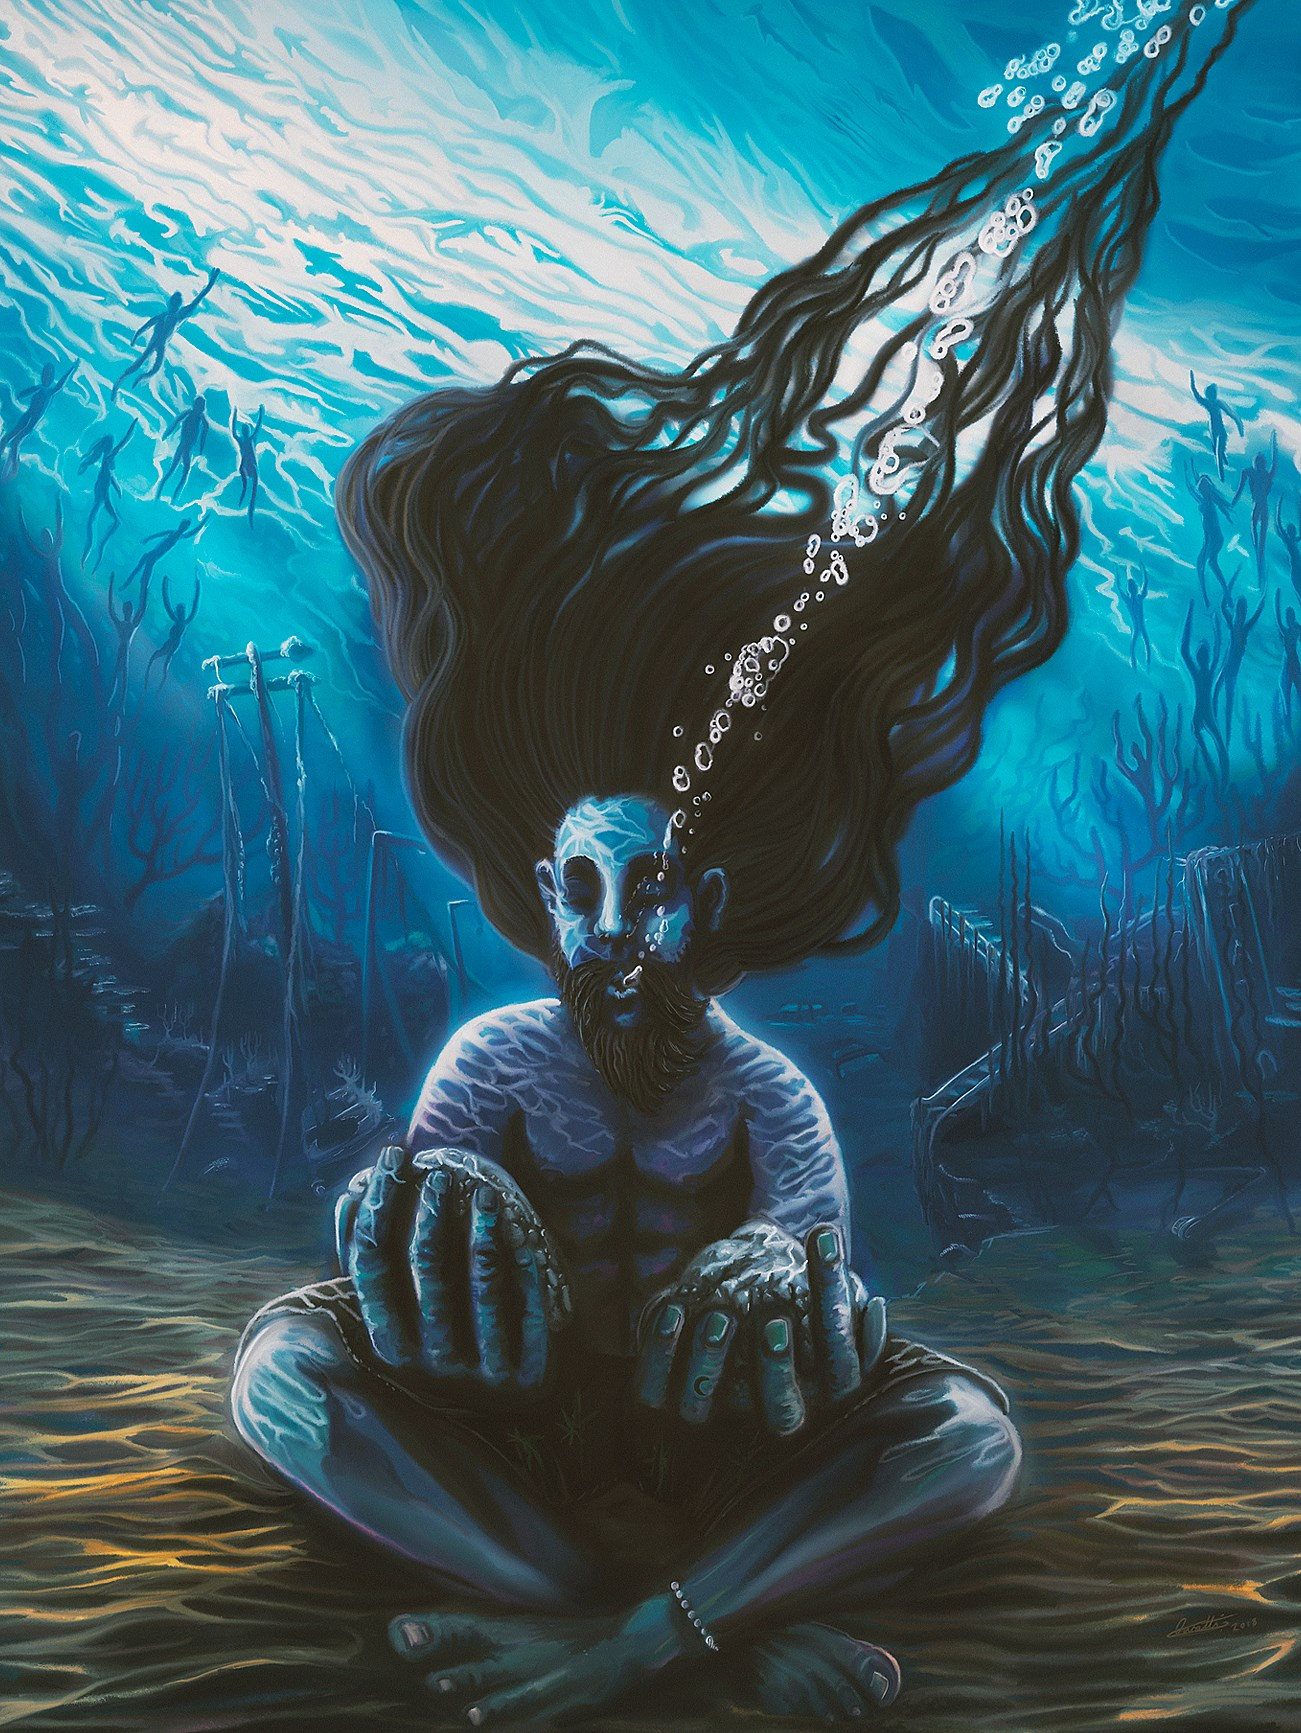 A recent work this month entitled 'The Freediver' representing personal peace in a chaotic world.